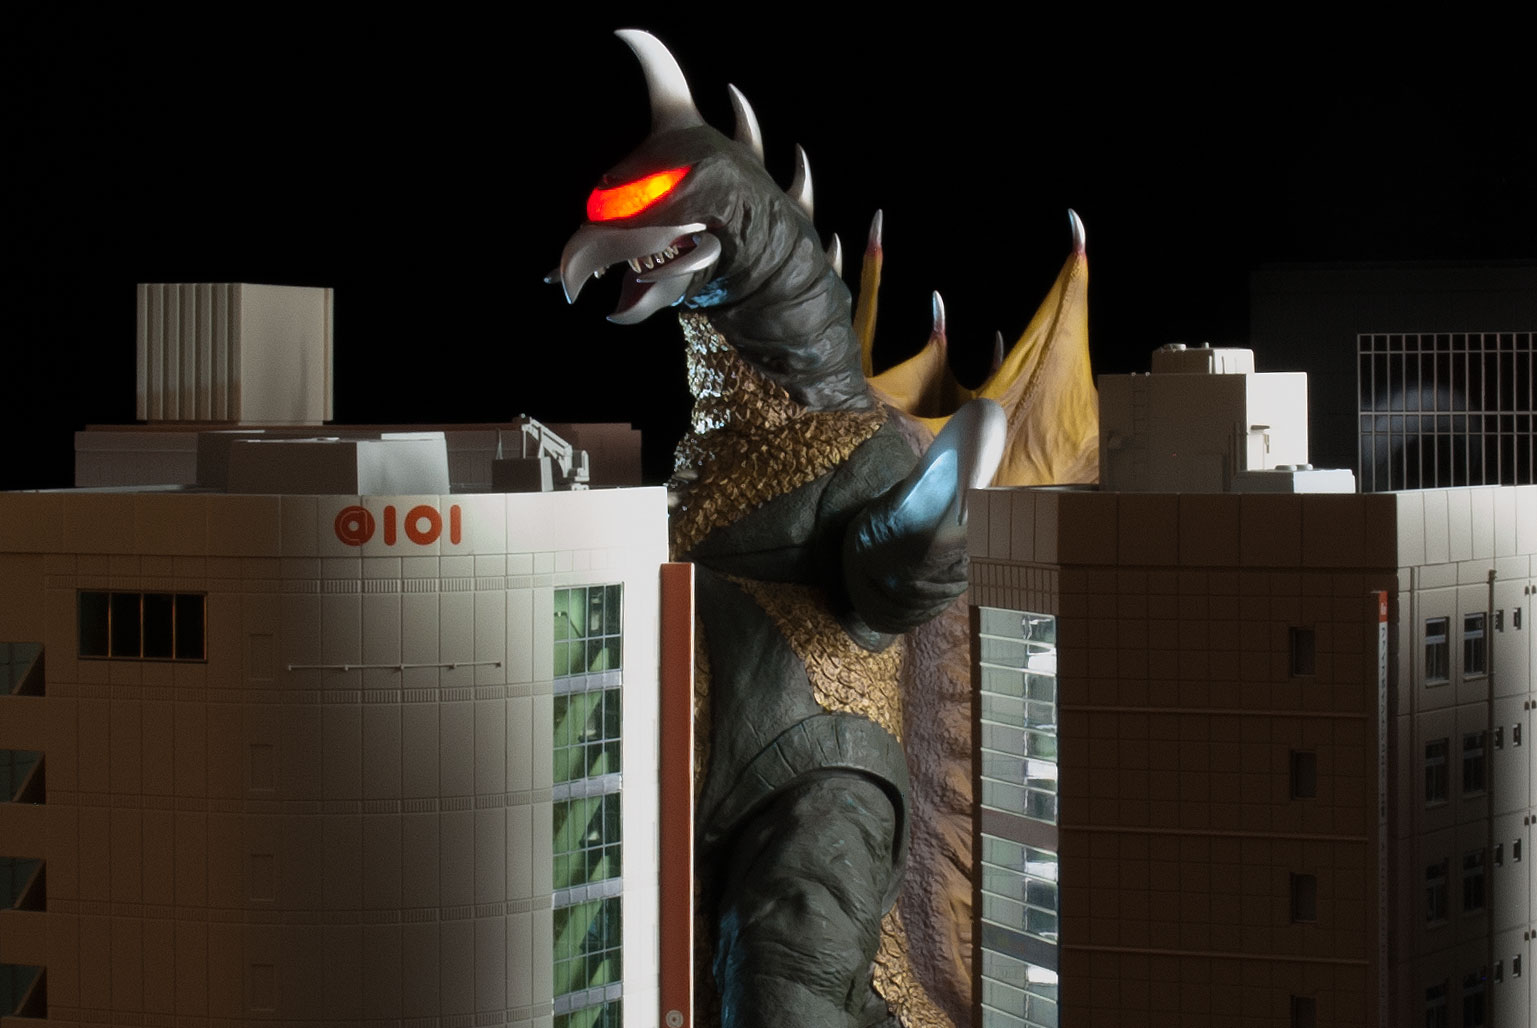 X-Plus 30cm Series Gigan 1972 vinyl figure with n scale buildings.